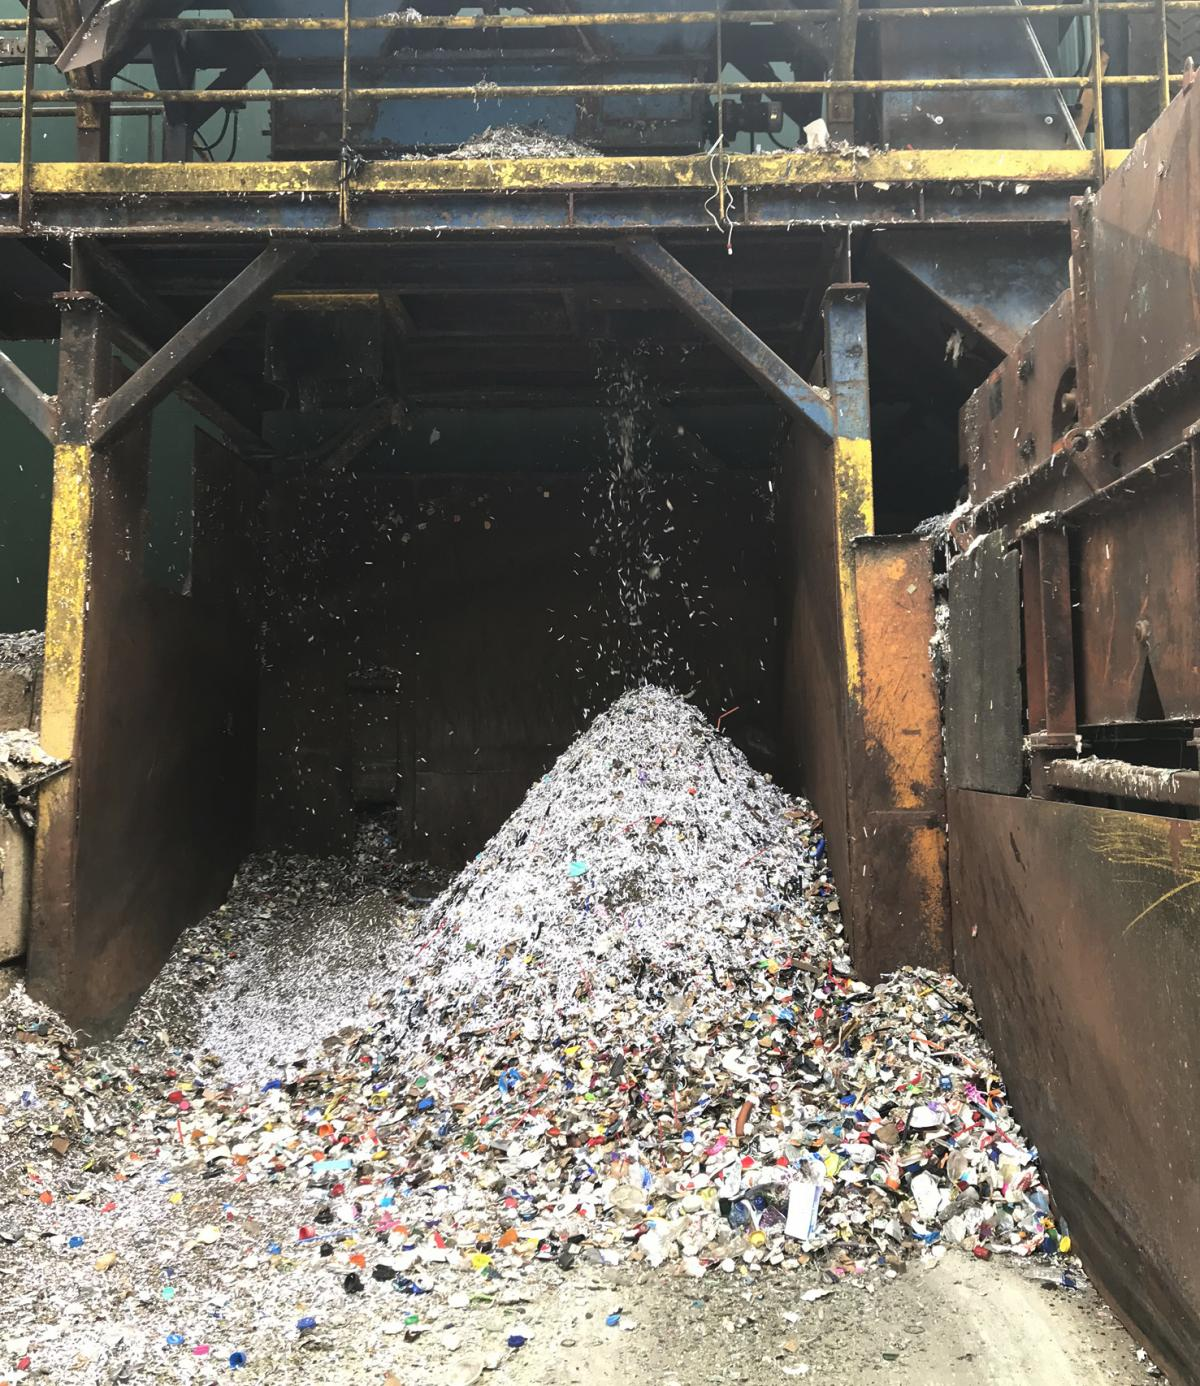 A pile of debris including all kinds of plastics grows hourly at Omni Recycling, a materials recovery facility in Pitman, N.J. Plastic bags are especially problematic because they can get caught in the conveyor belts and equipment and gum up the recycling